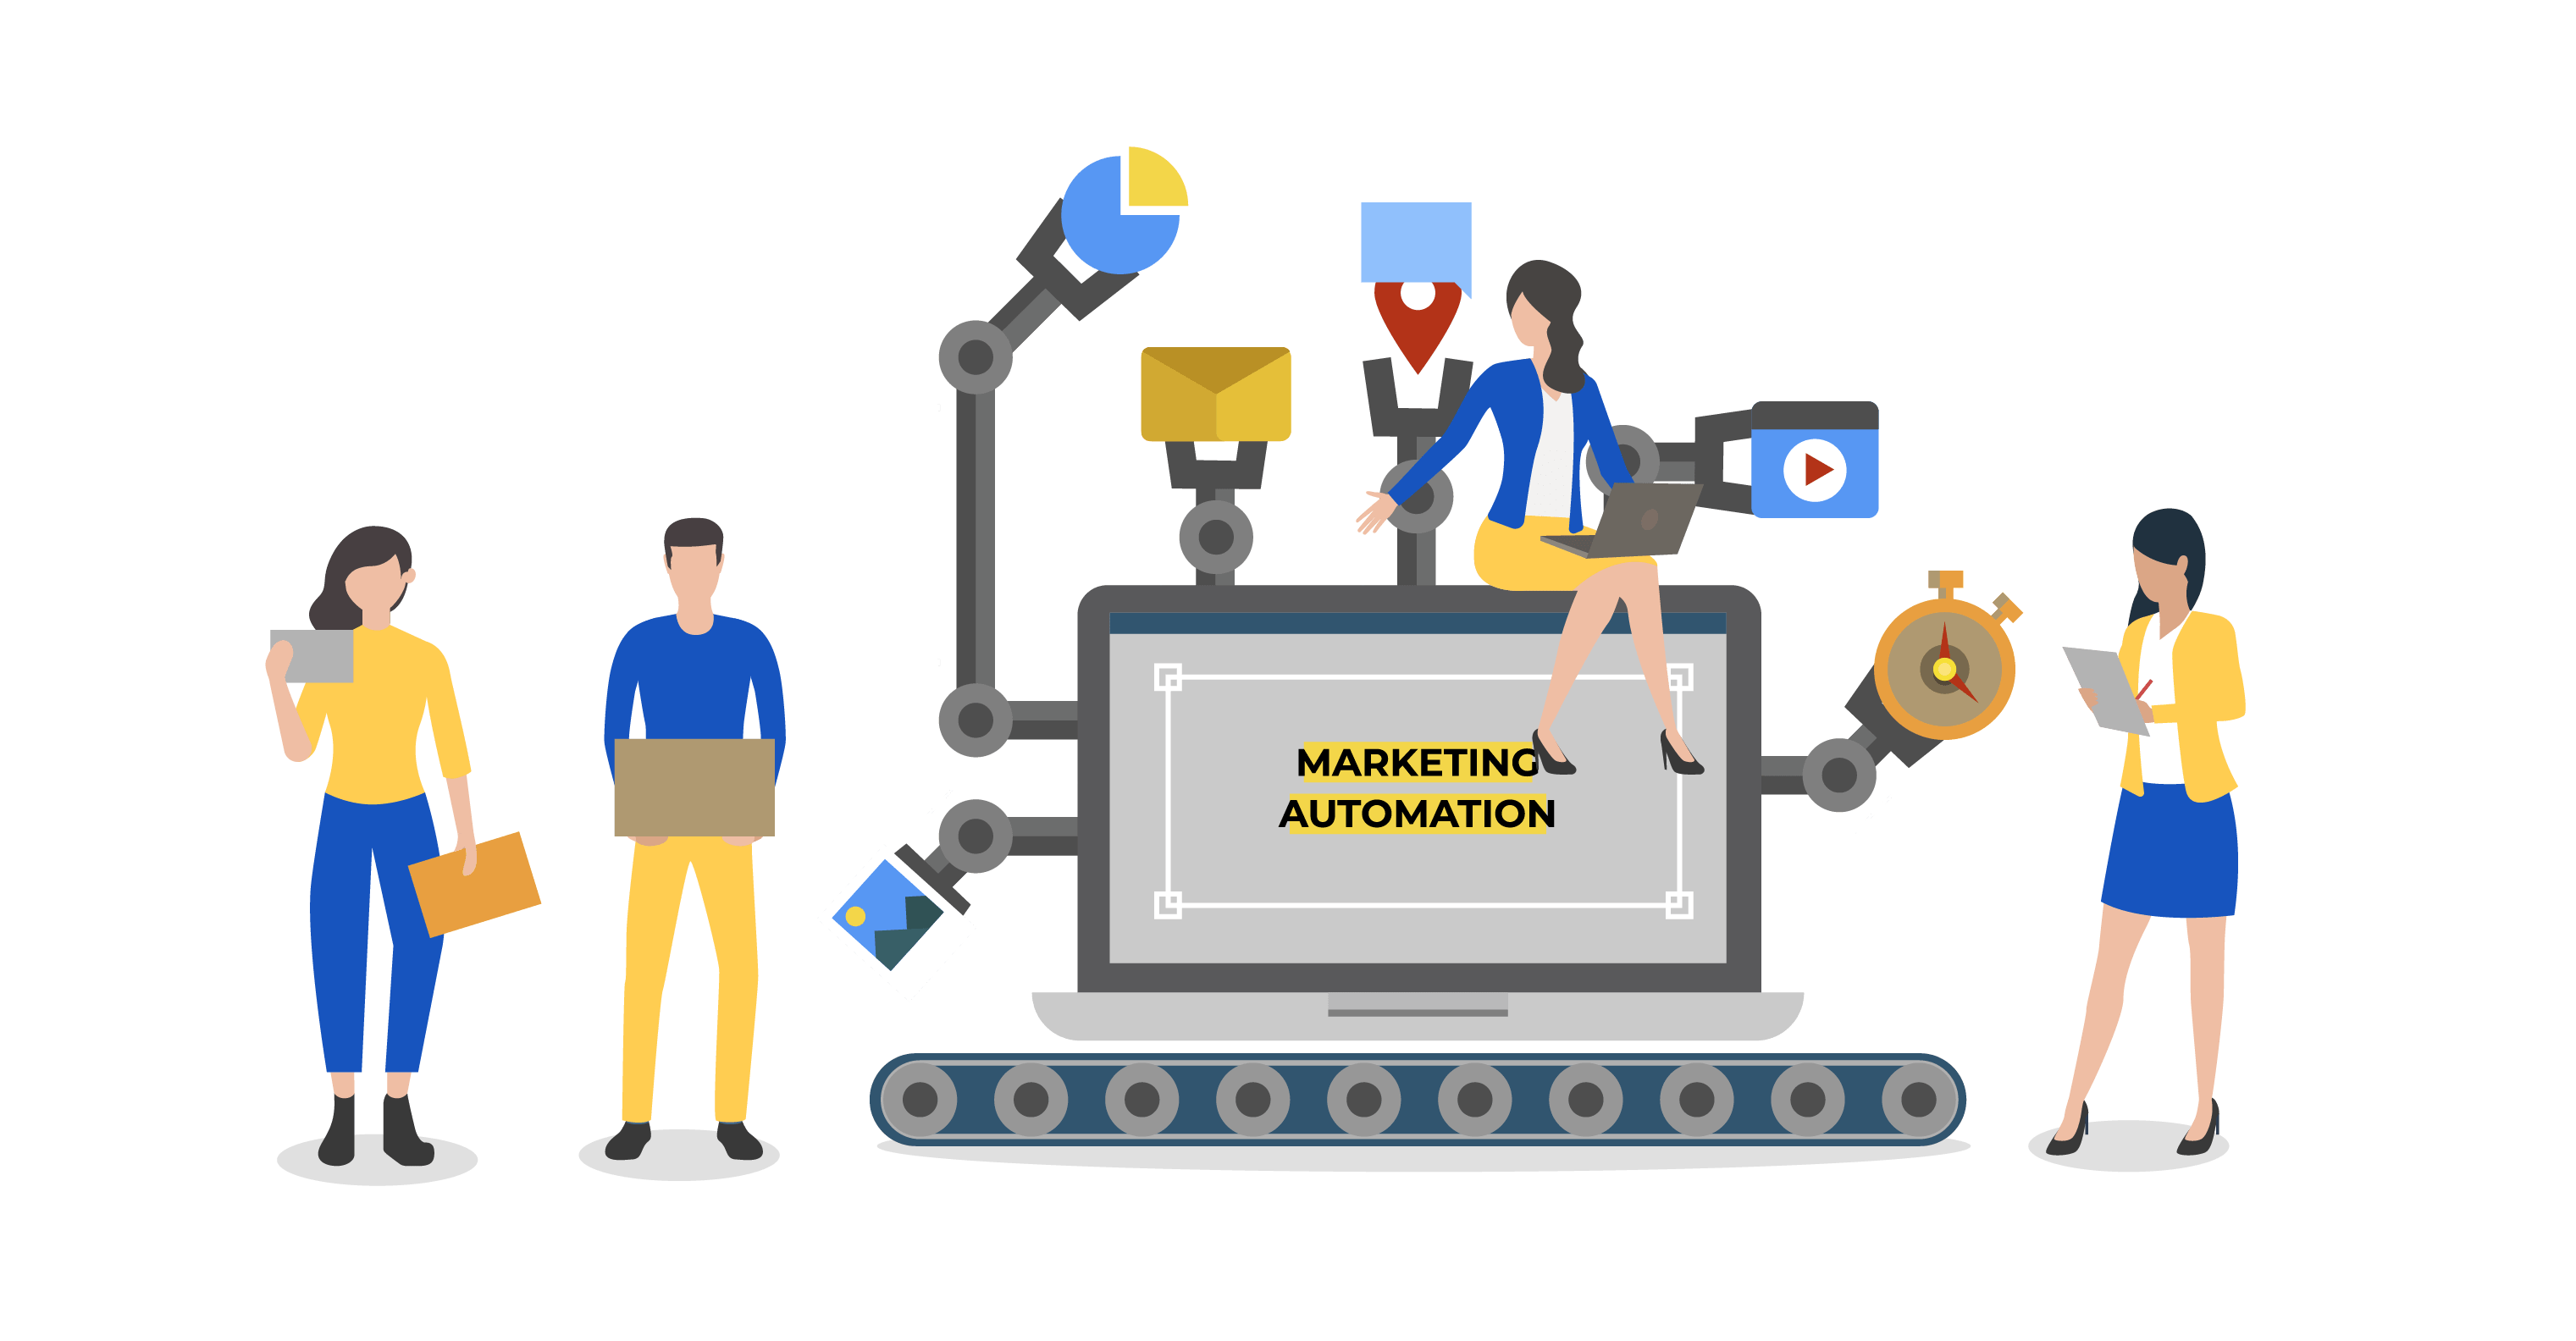 atraer clientes marketing automation